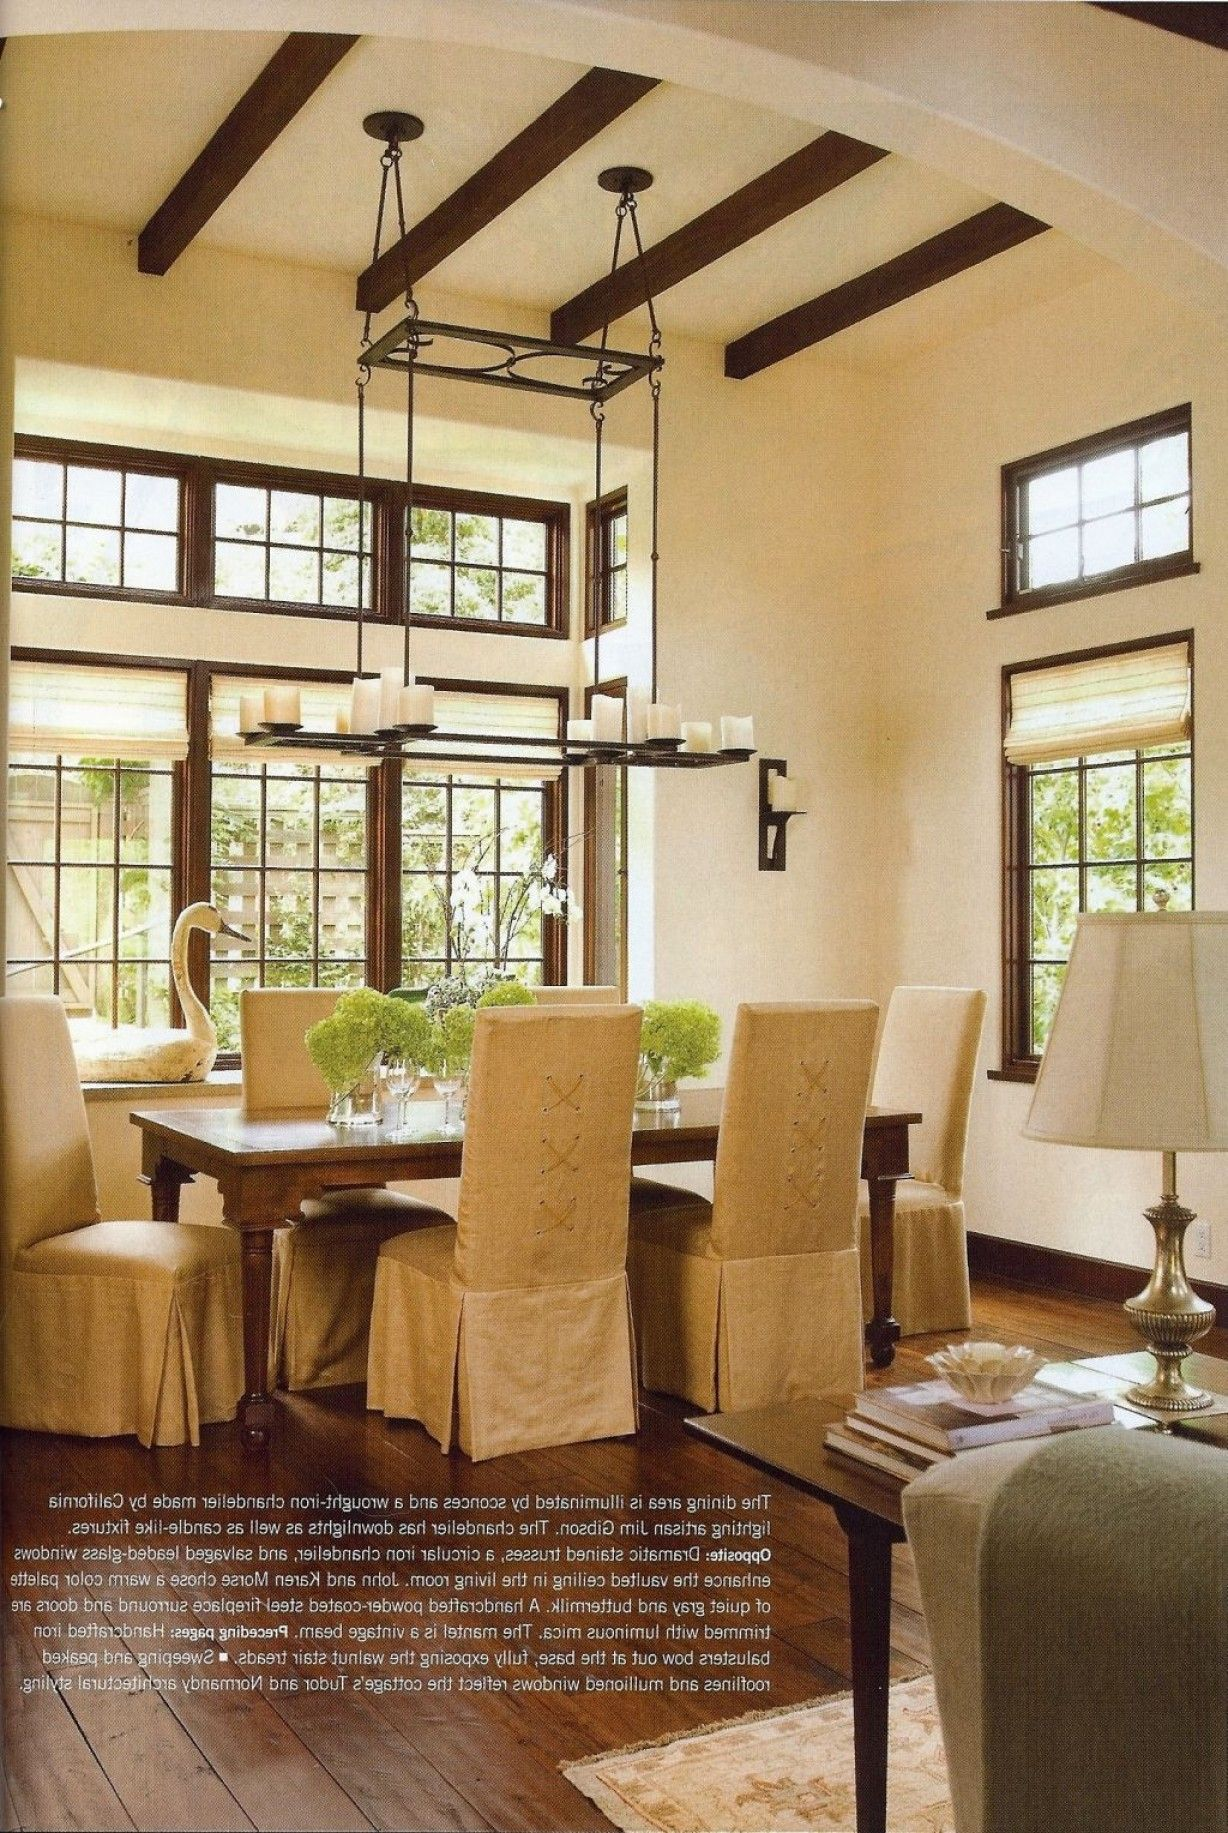 Tudor style homes interior tudor style furniture with sofa and round wooden table complete best tudor homes interior design